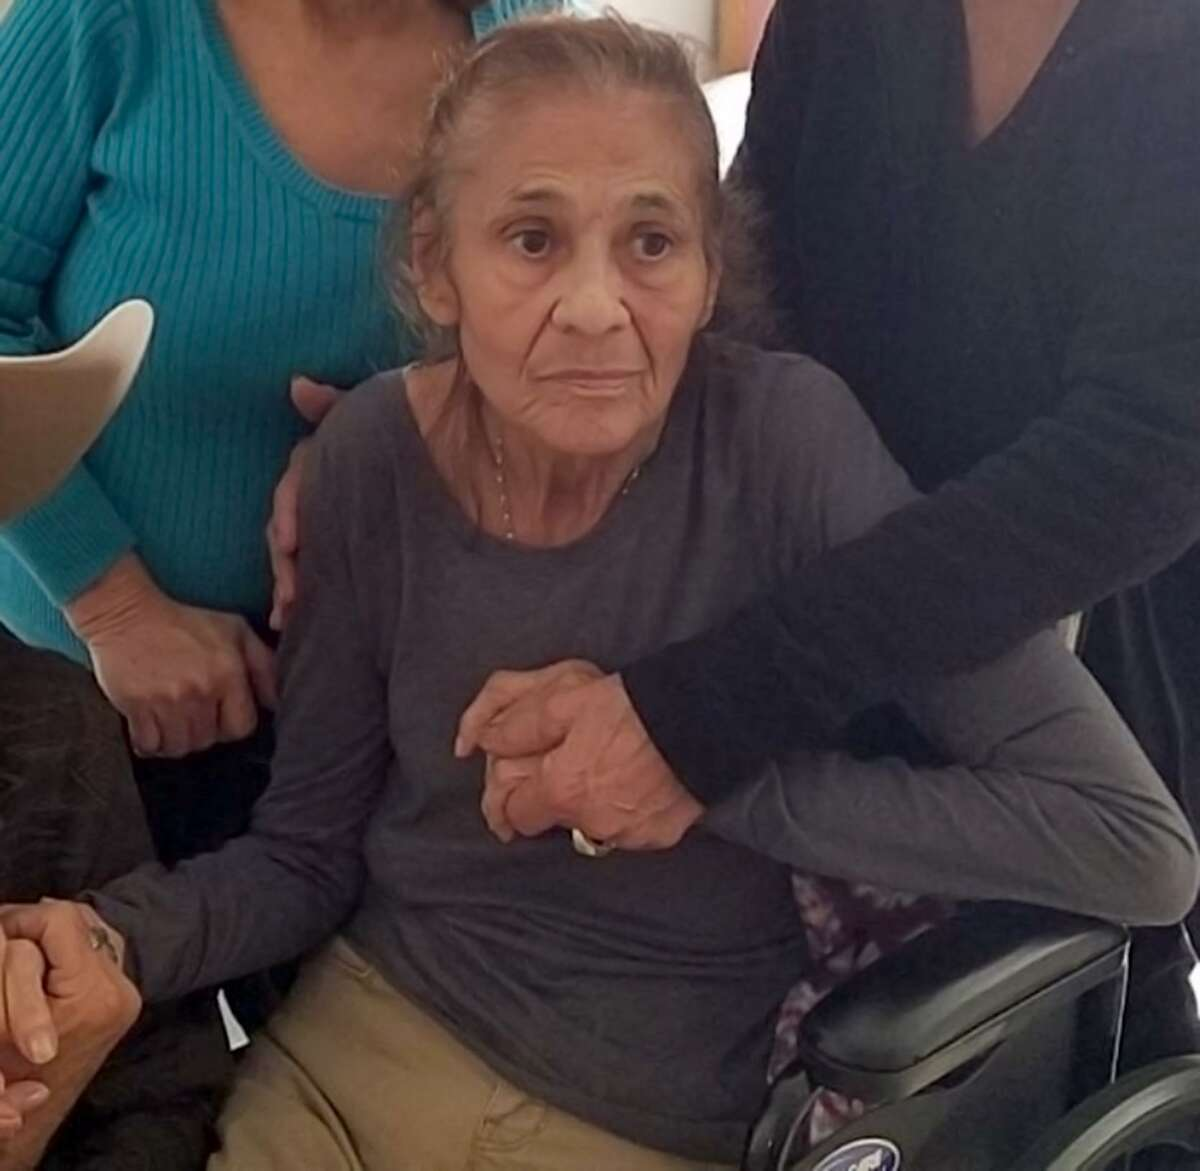 Family members surround Dolores Gutierrez DeLeon in this undated photo. DeLeon died April 23 at the age of 78. Her family has filed a lawsuit against Castillo Mission Funeral Home, alleging DeLeon's body went missing. The family's attorney said Wednesday it appears she was cremated under the name of another woman who died hte same day.